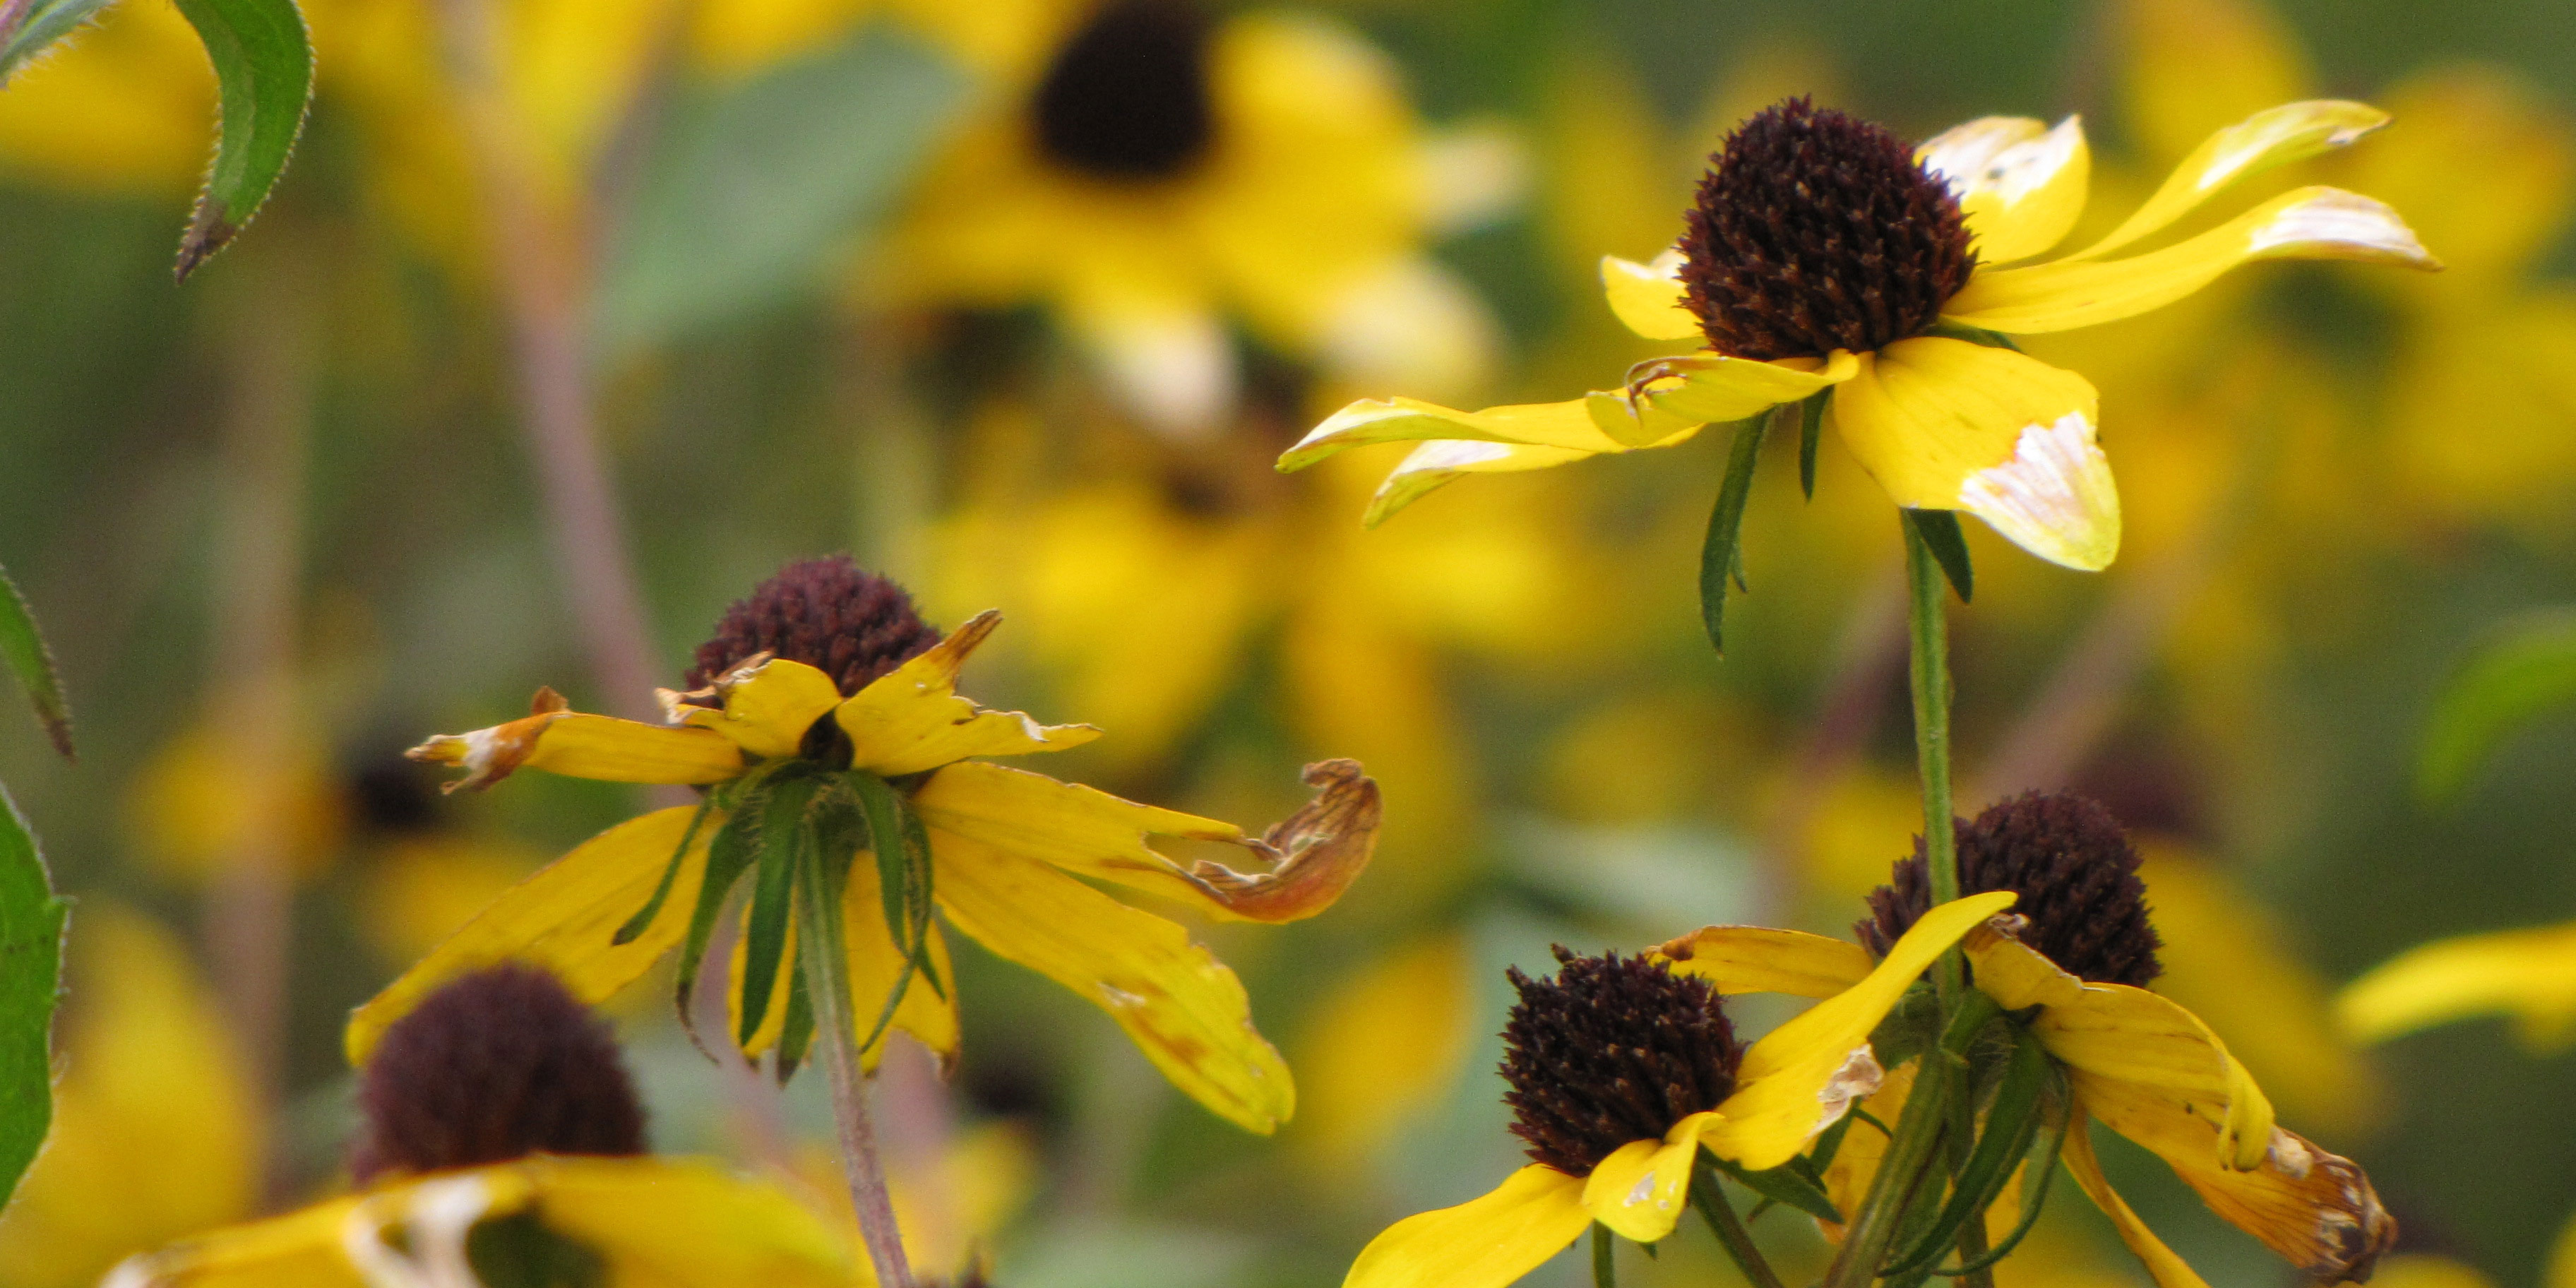 Yellow flowers with prominent brown disks bloom in a green prairie.